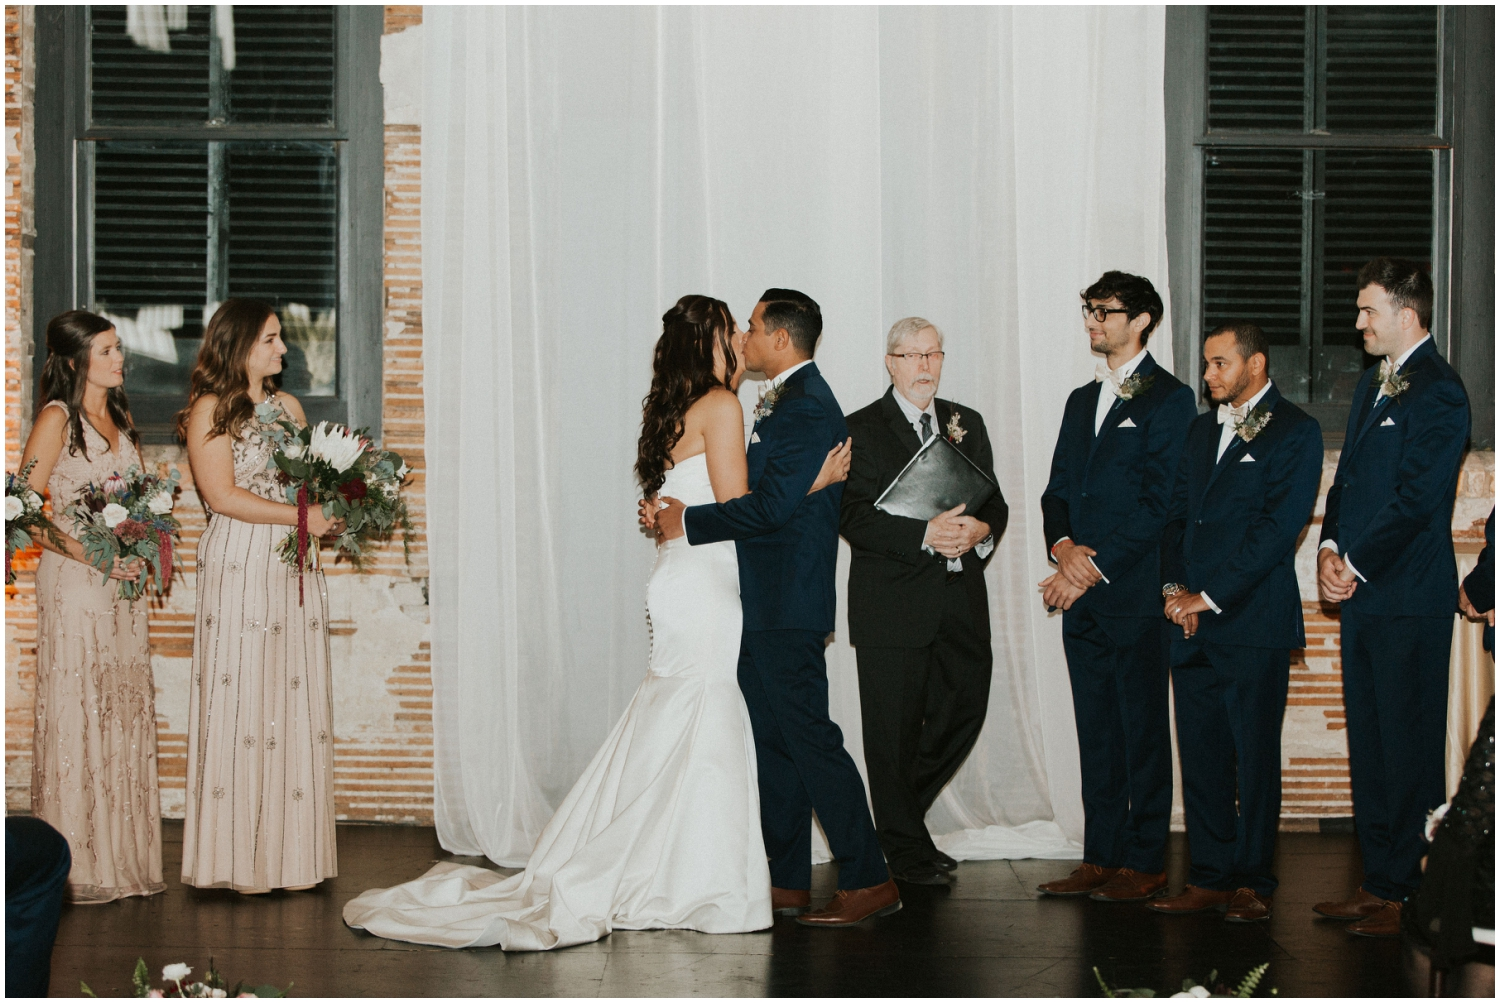 Bride and groom kiss at their wedding ceremony